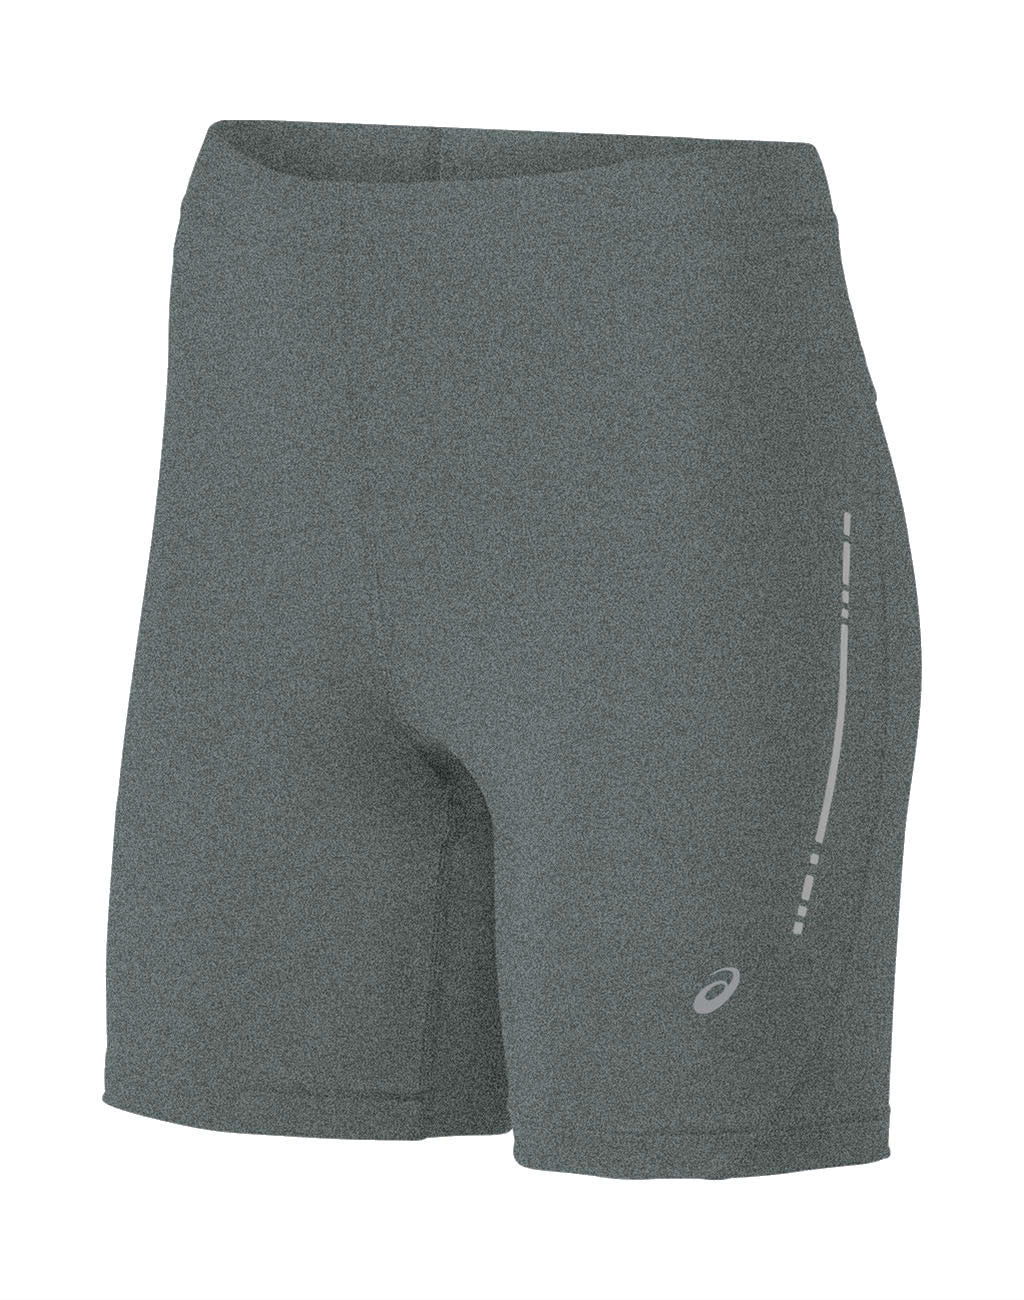 ASICS Sprinter Shorts (Women's)